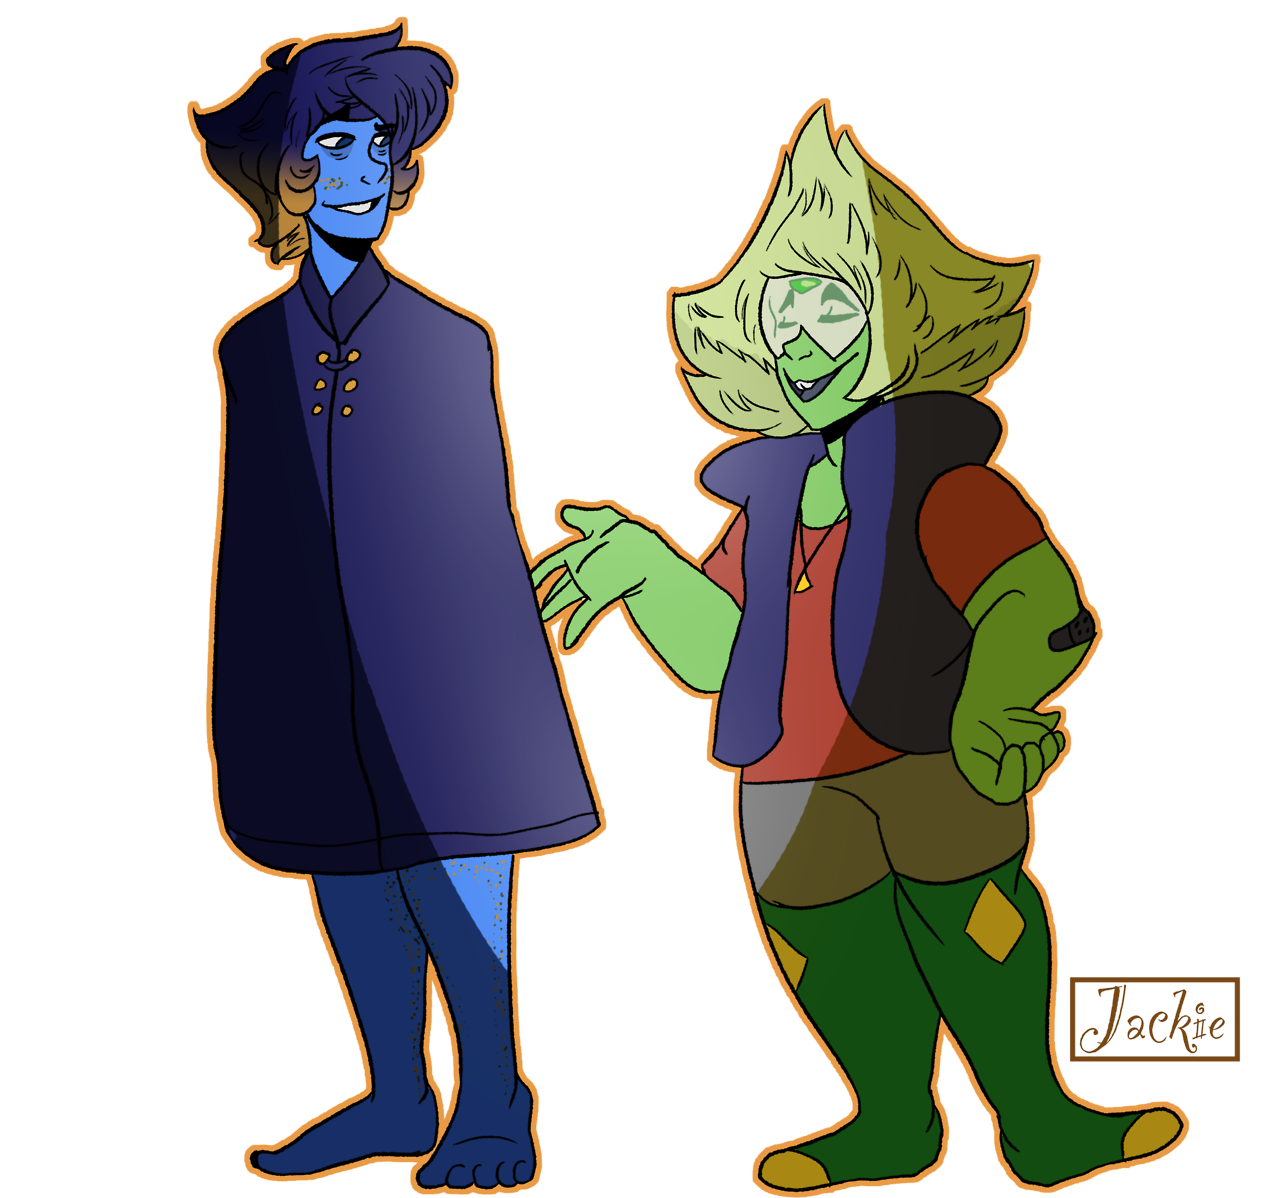 I drew Lapis and Peridot dressed up as Dipper and Wirt! Lapis refused to wear Wirt's hat and Dipper's hat didnt fit on Peri's head